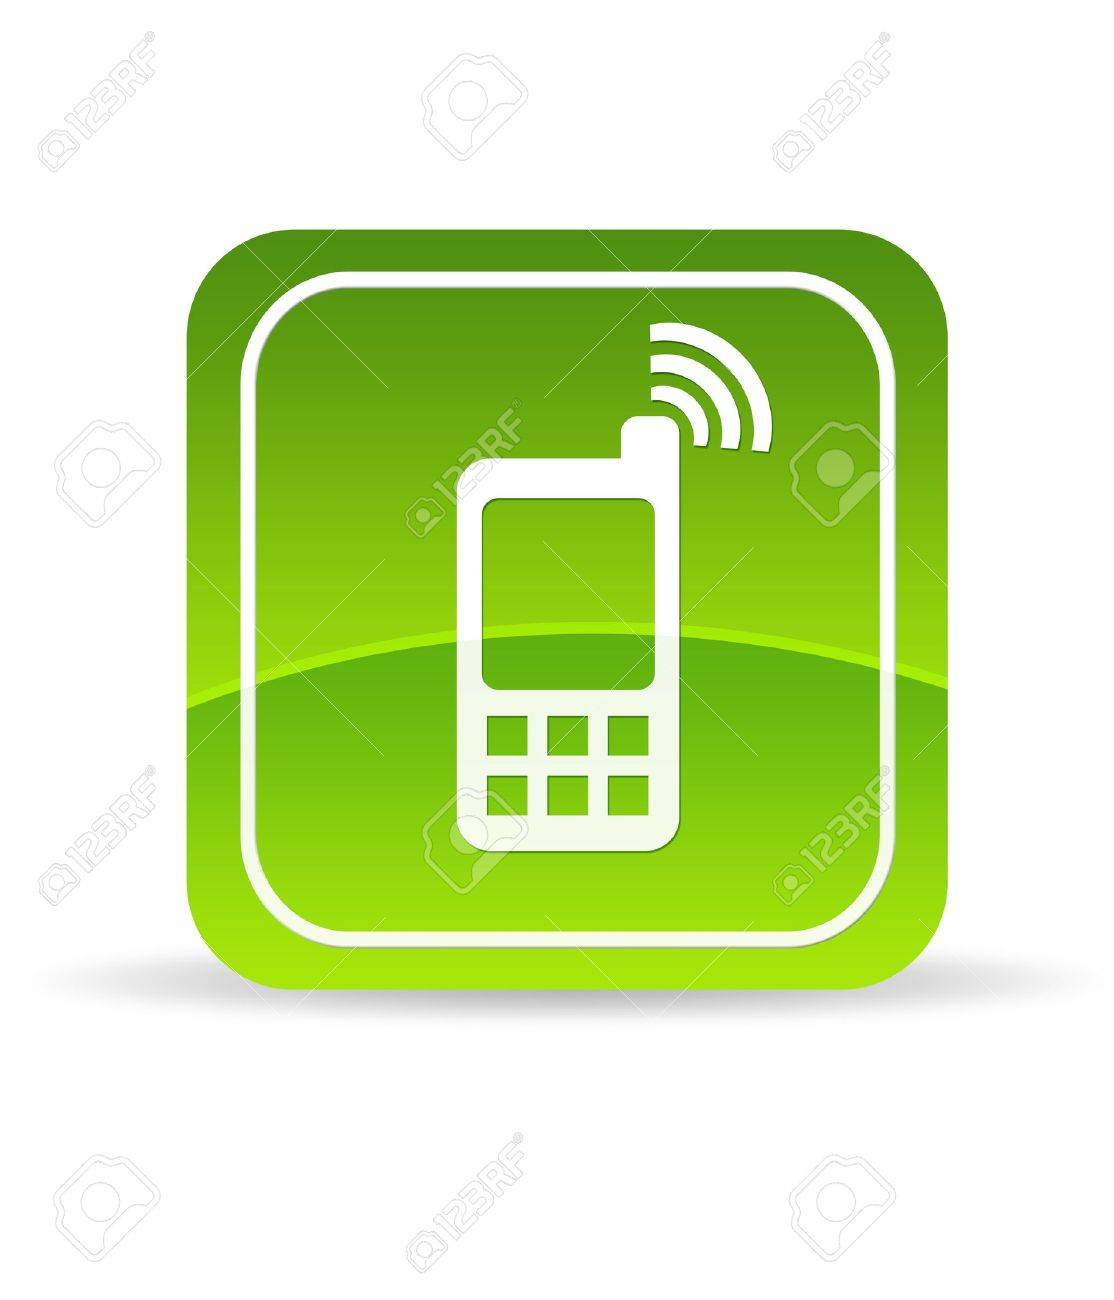 High resolution green mobile phone icon on white background. Stock Photo - 9750152